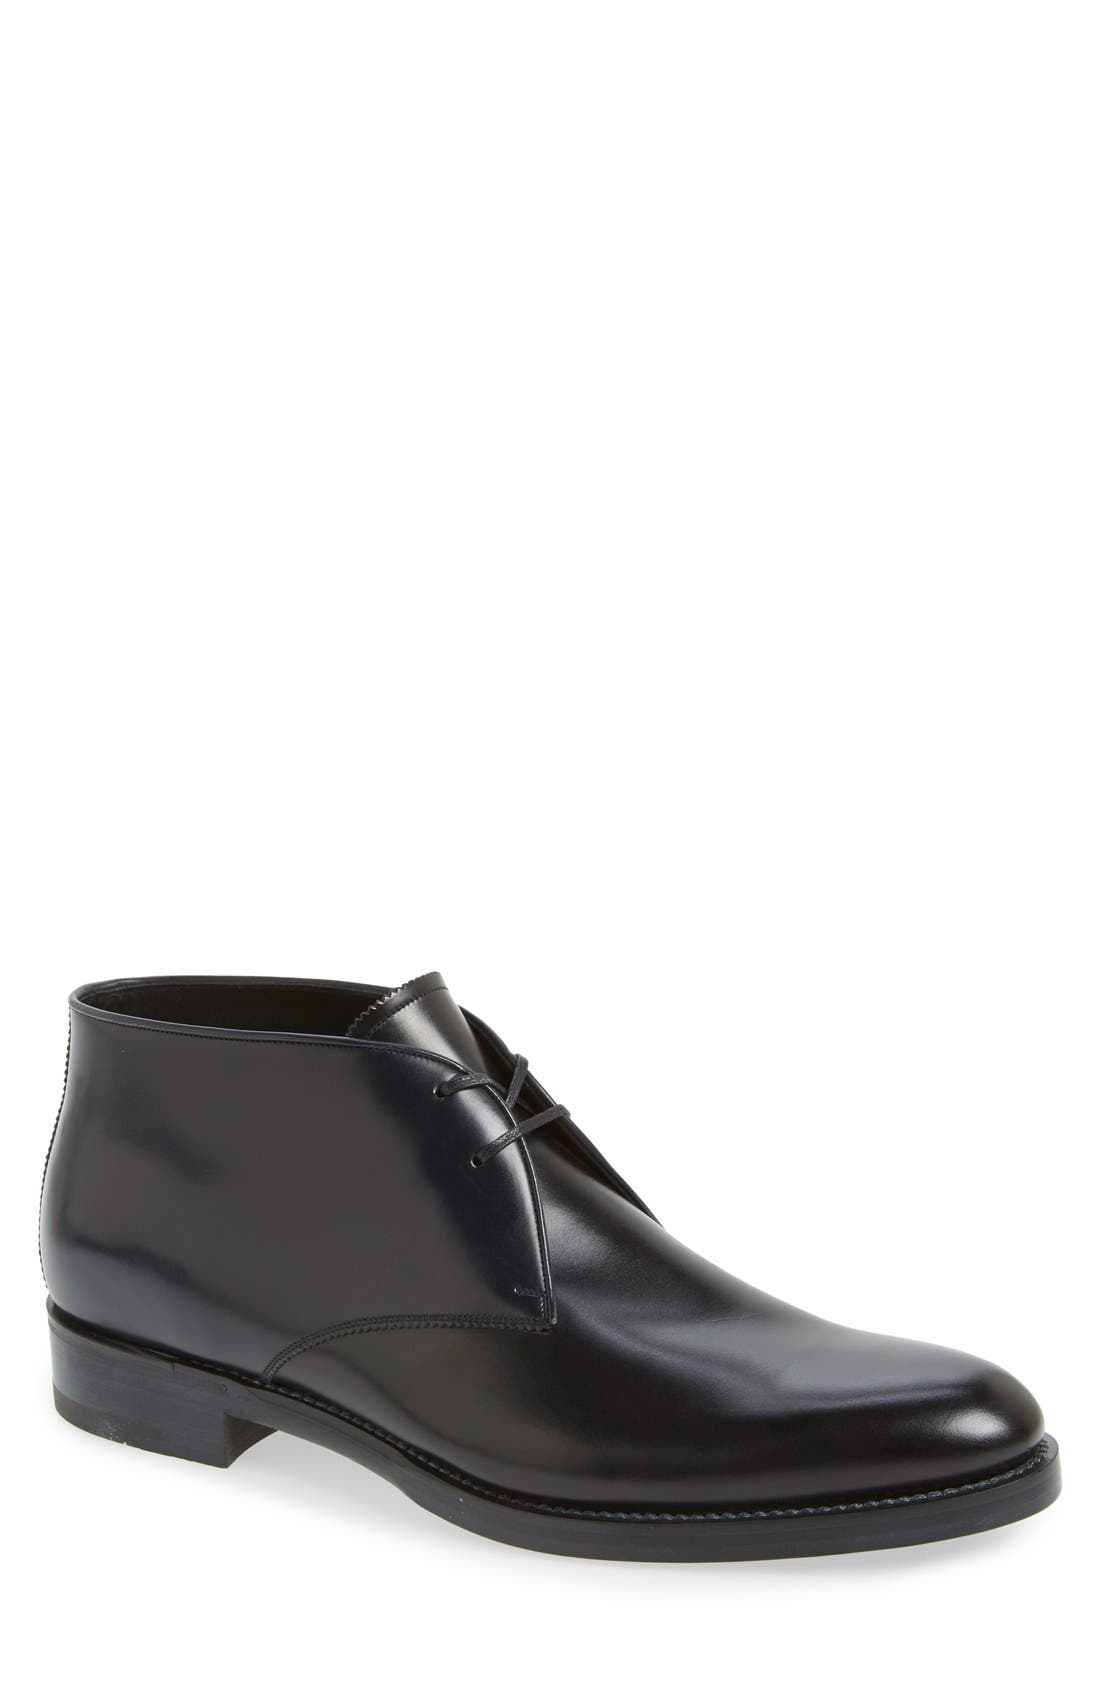 SALVATORE FERRAGAMO,                             'Georgetown' Chukka Boot,                             Main thumbnail 1, color,                             001